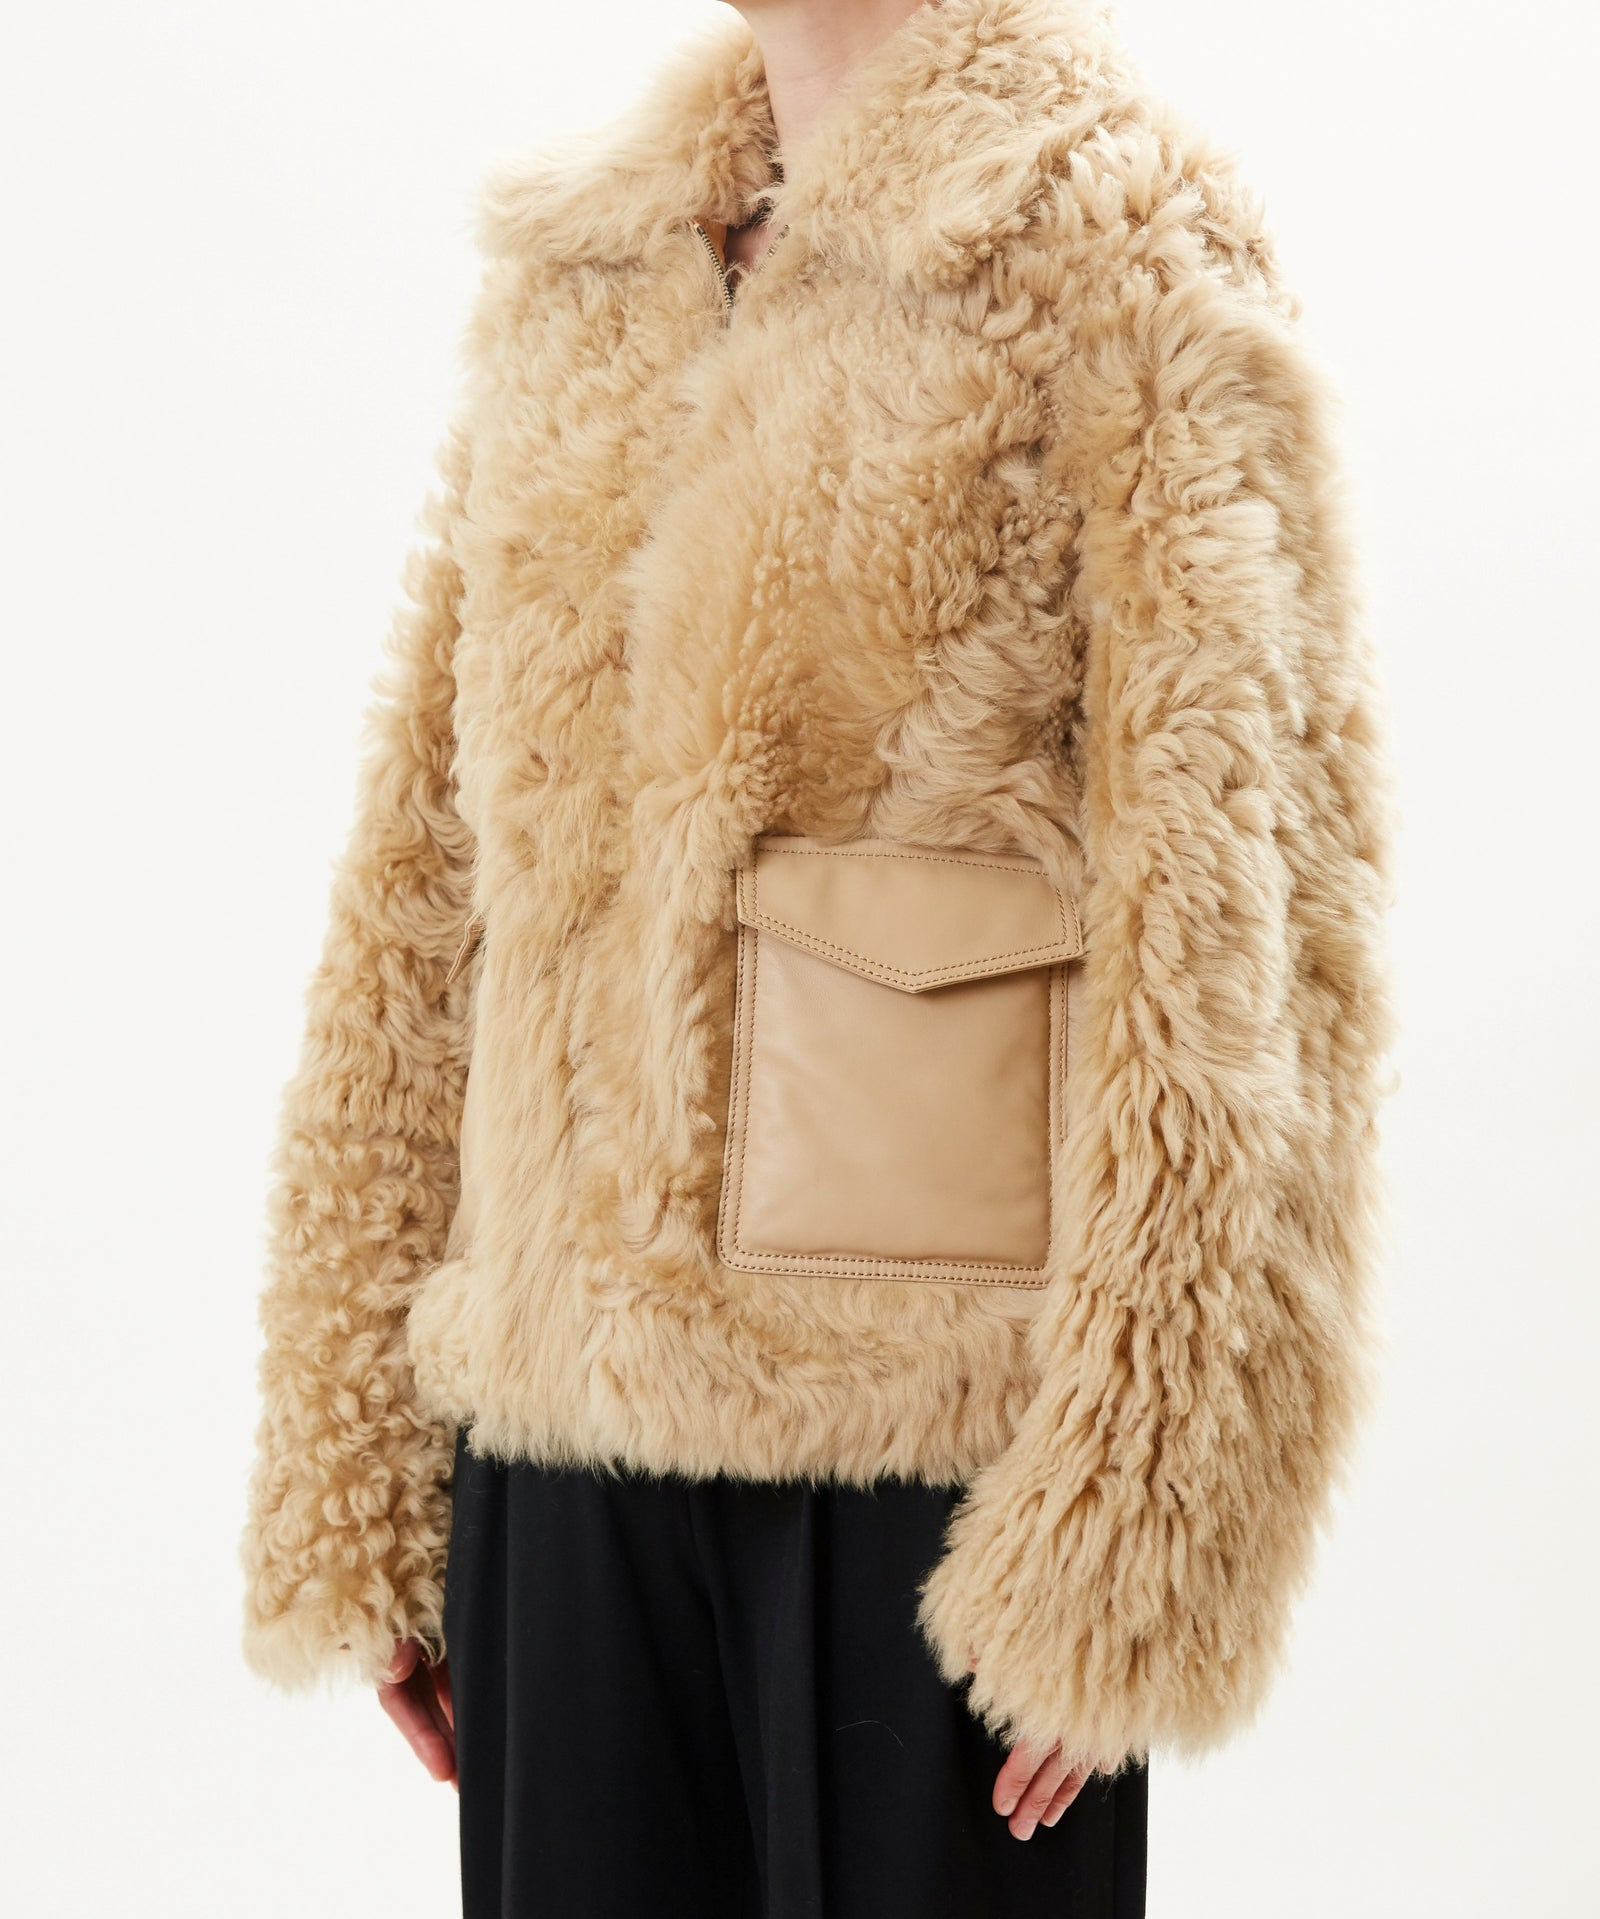 Pre-Order Sand Reversible Shearling Jacket With Front Pockets